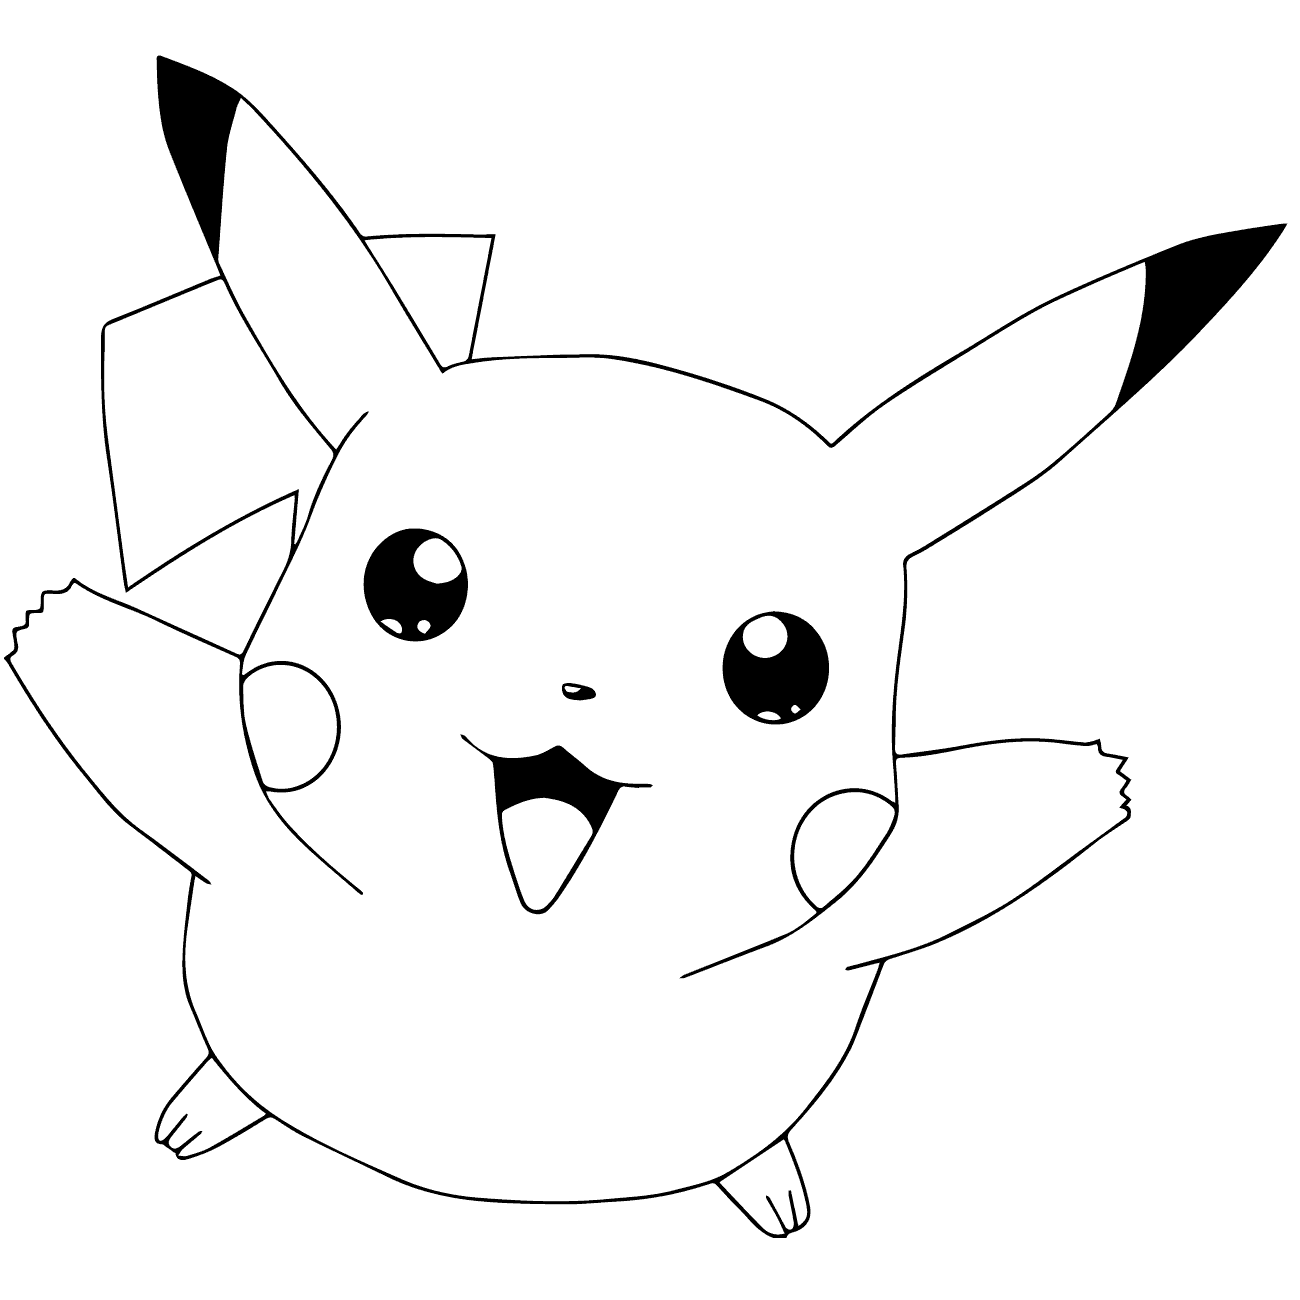 Pikachu coloring sheets to print